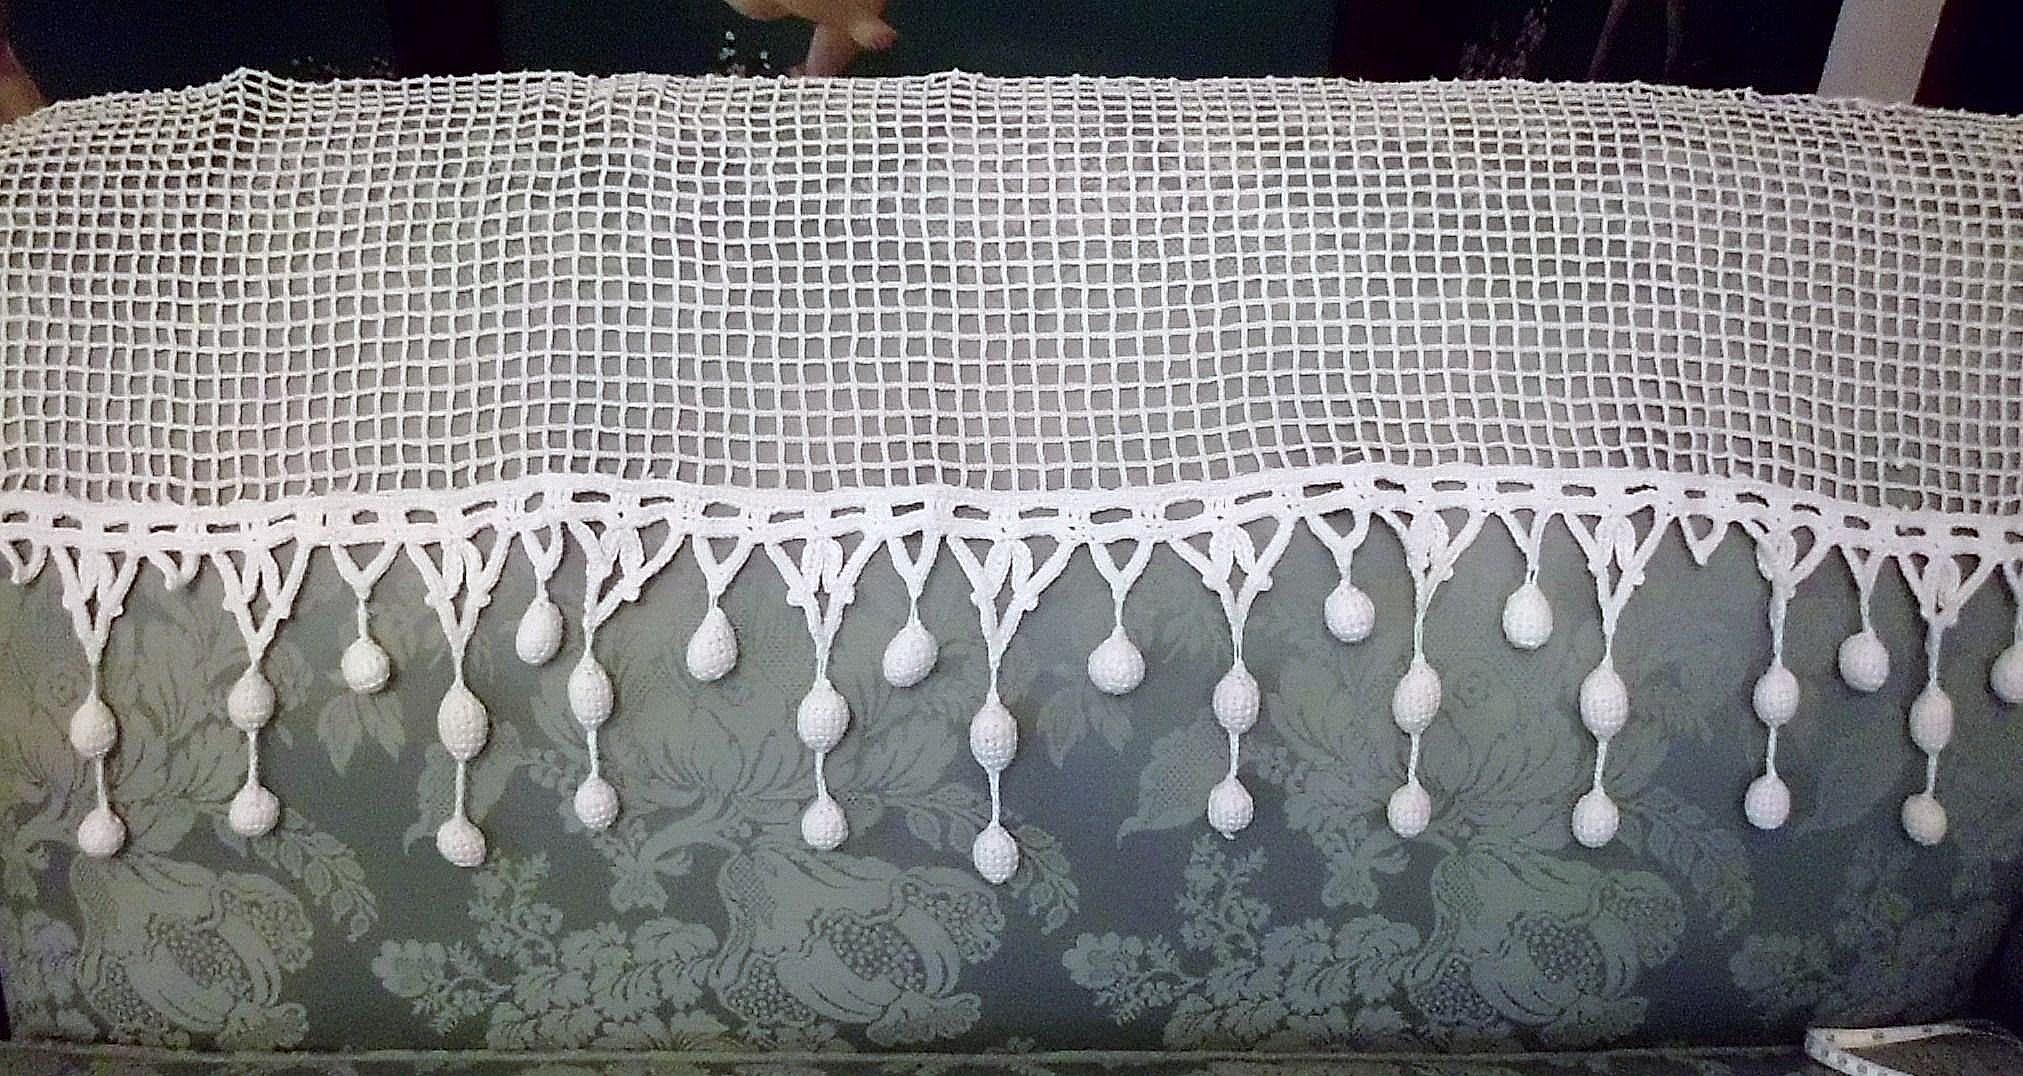 White Handmade Crochet Net Lace Valance Panel with Bobble Fringe